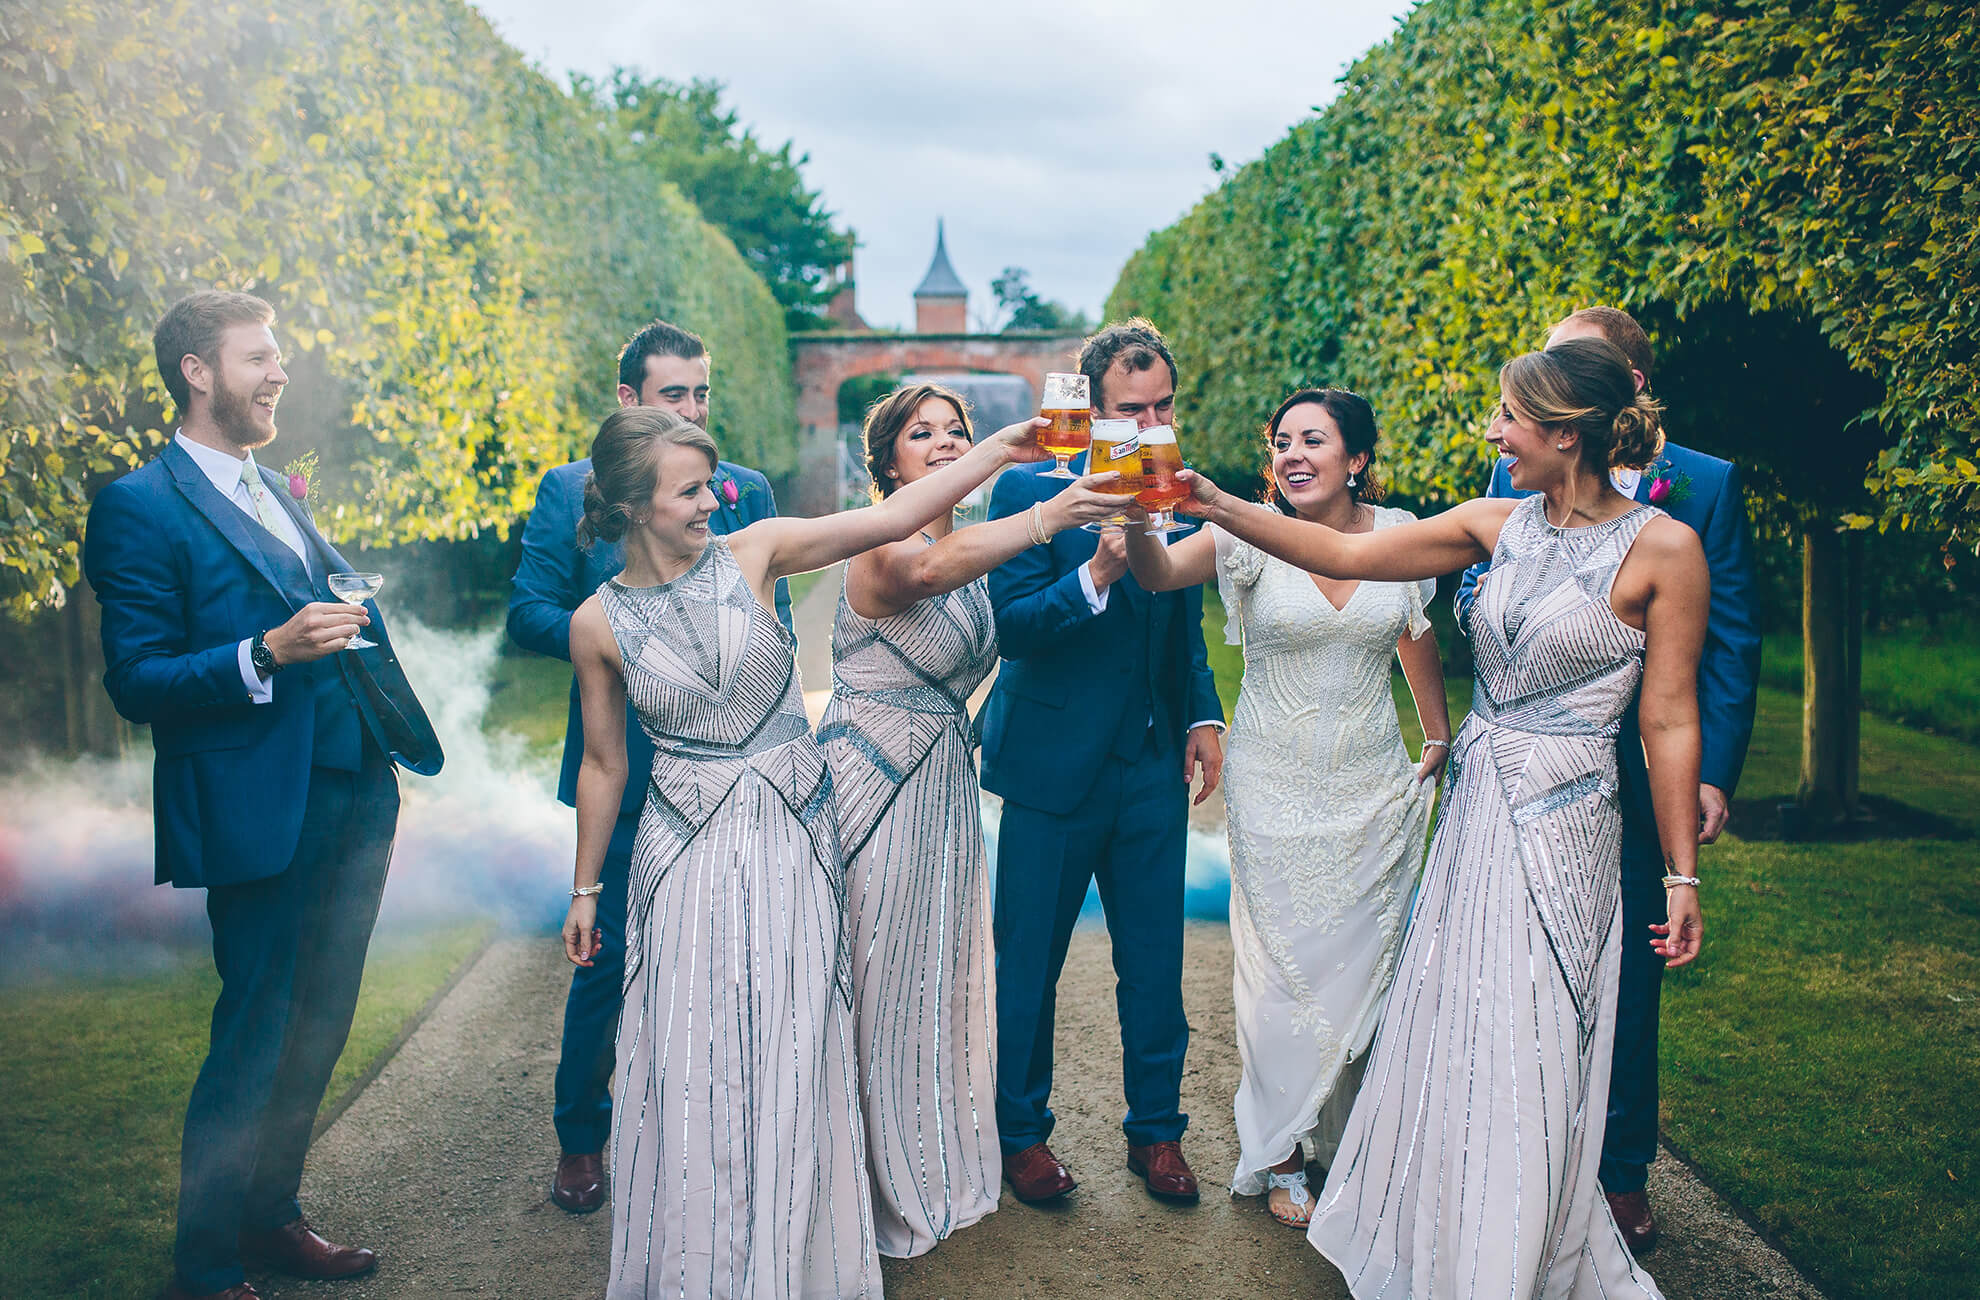 The bridal party join the bride and groom wearing sequin bridesmaid dresses for a vintage look